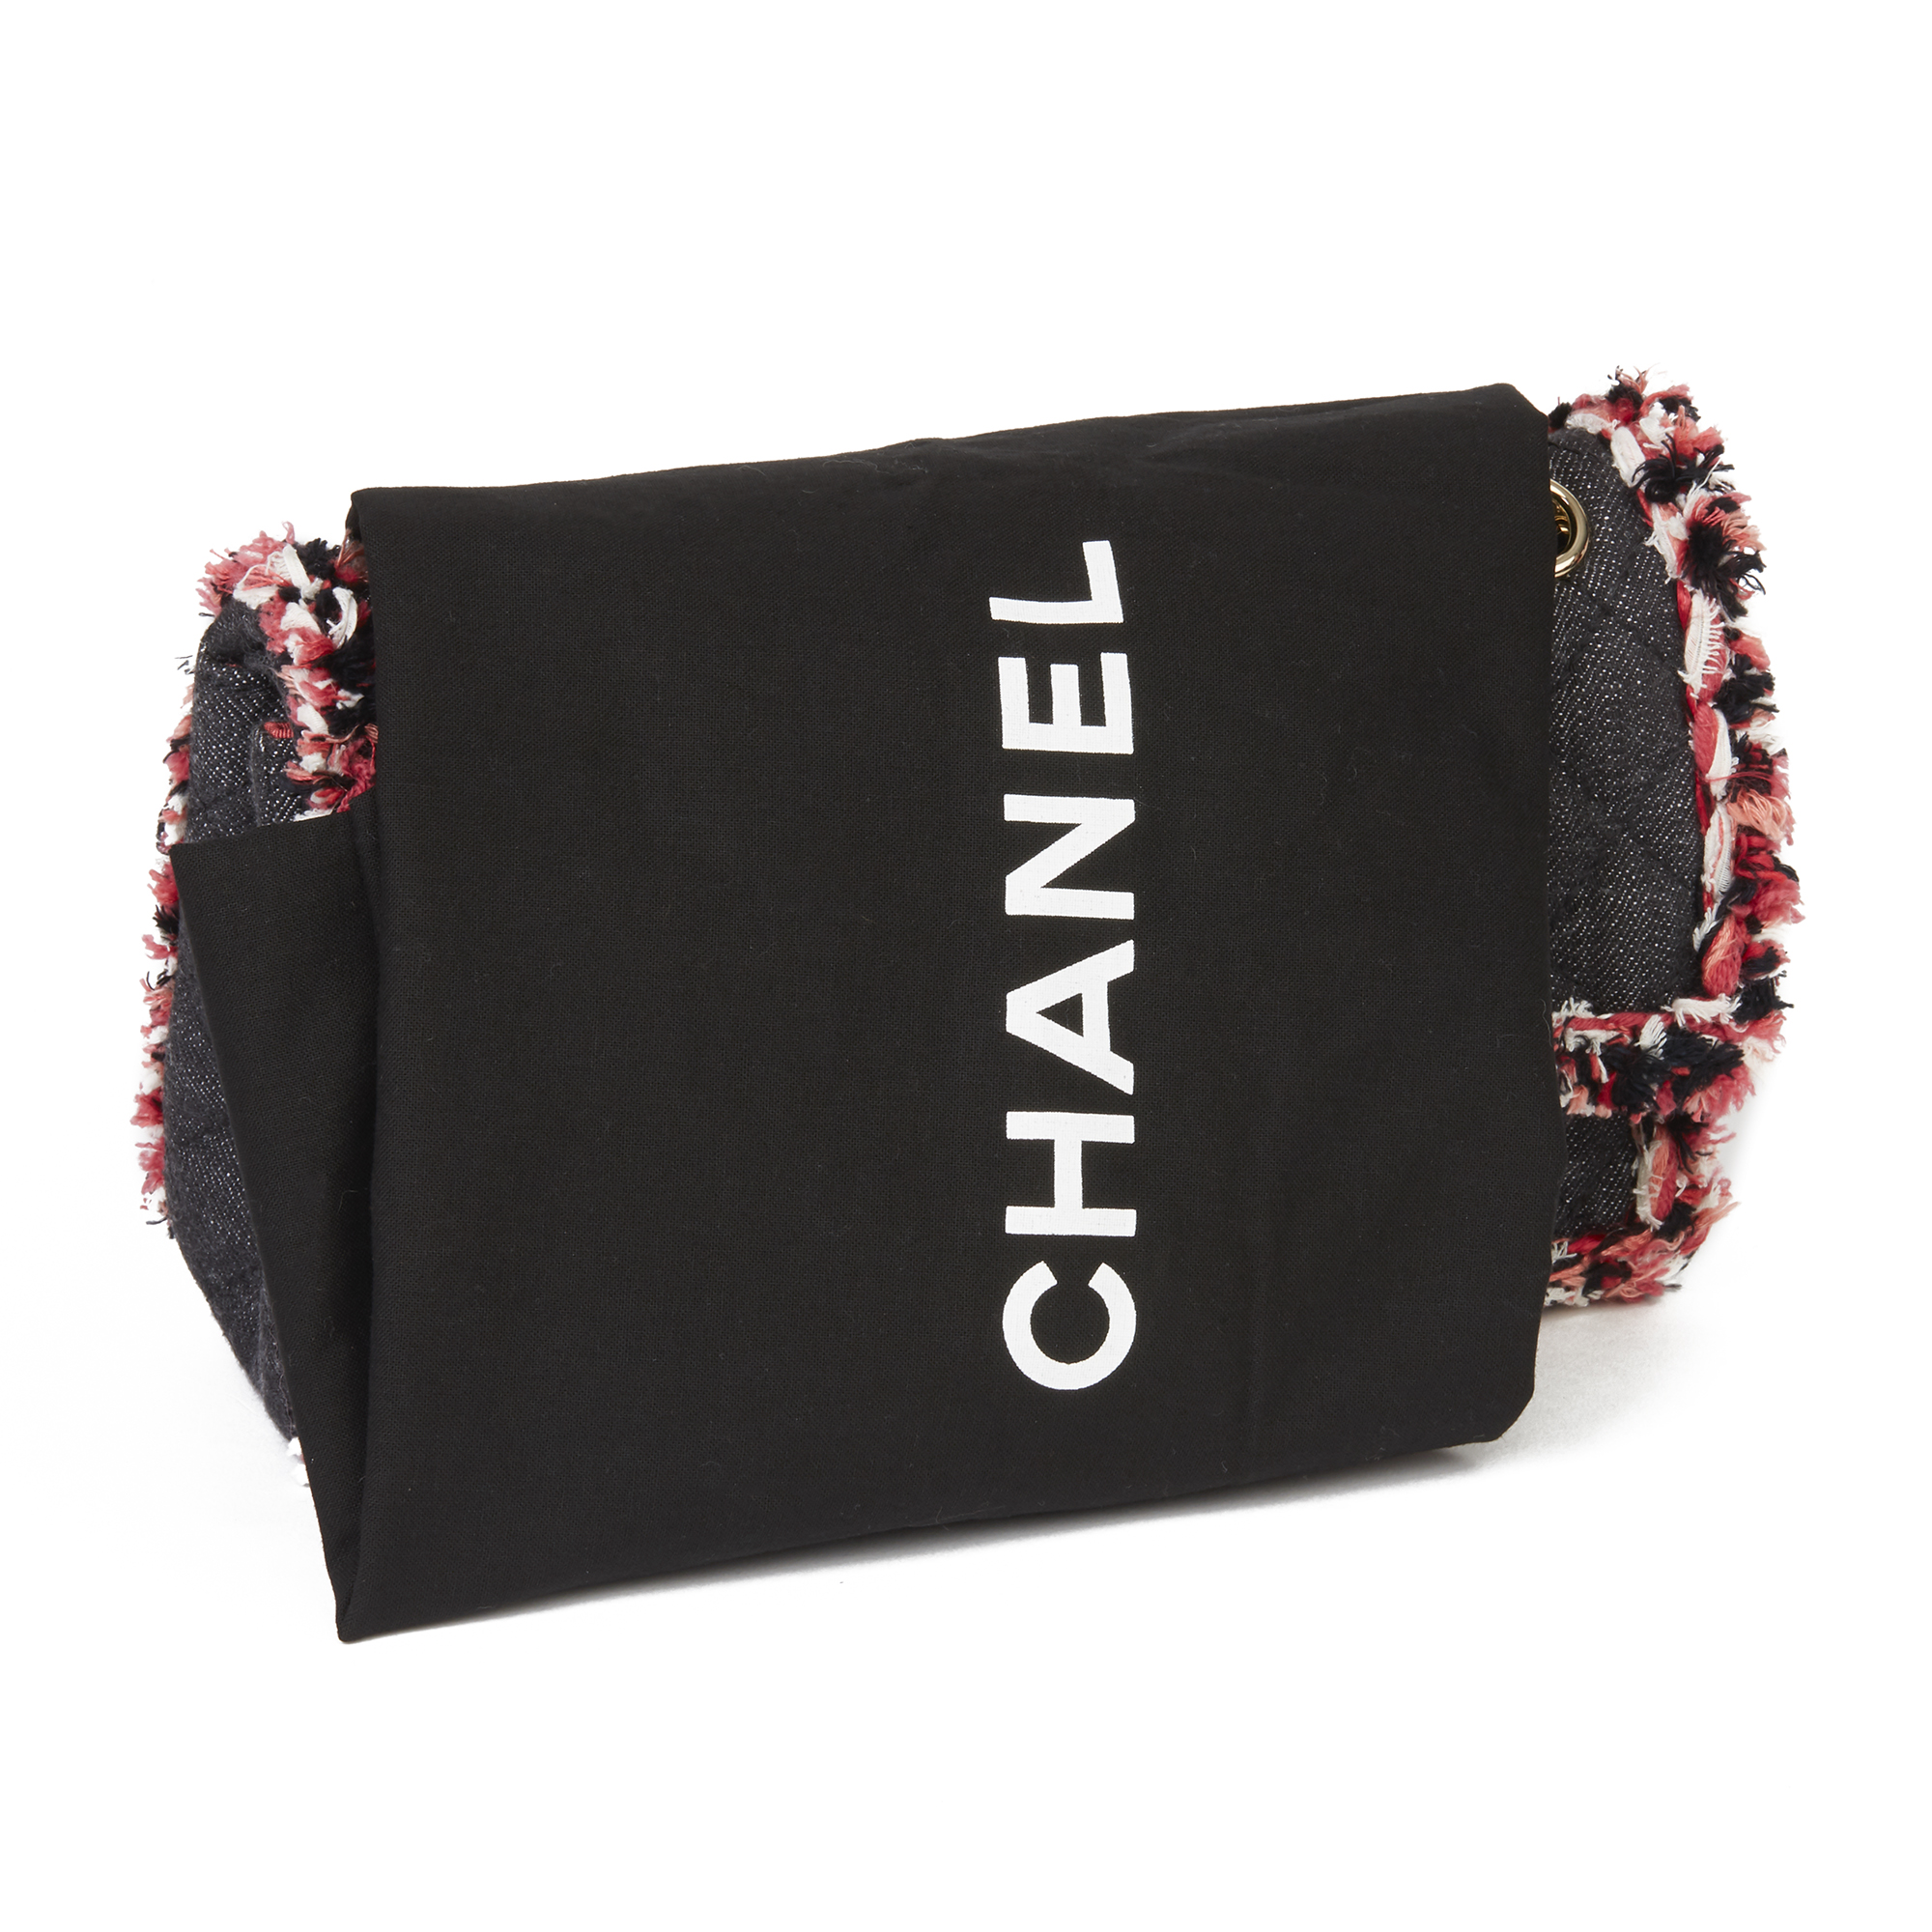 Chanel Black Quilted Denim & Pink Tweed 2.55 Reissue 225 Double Flap Bag - Image 3 of 12